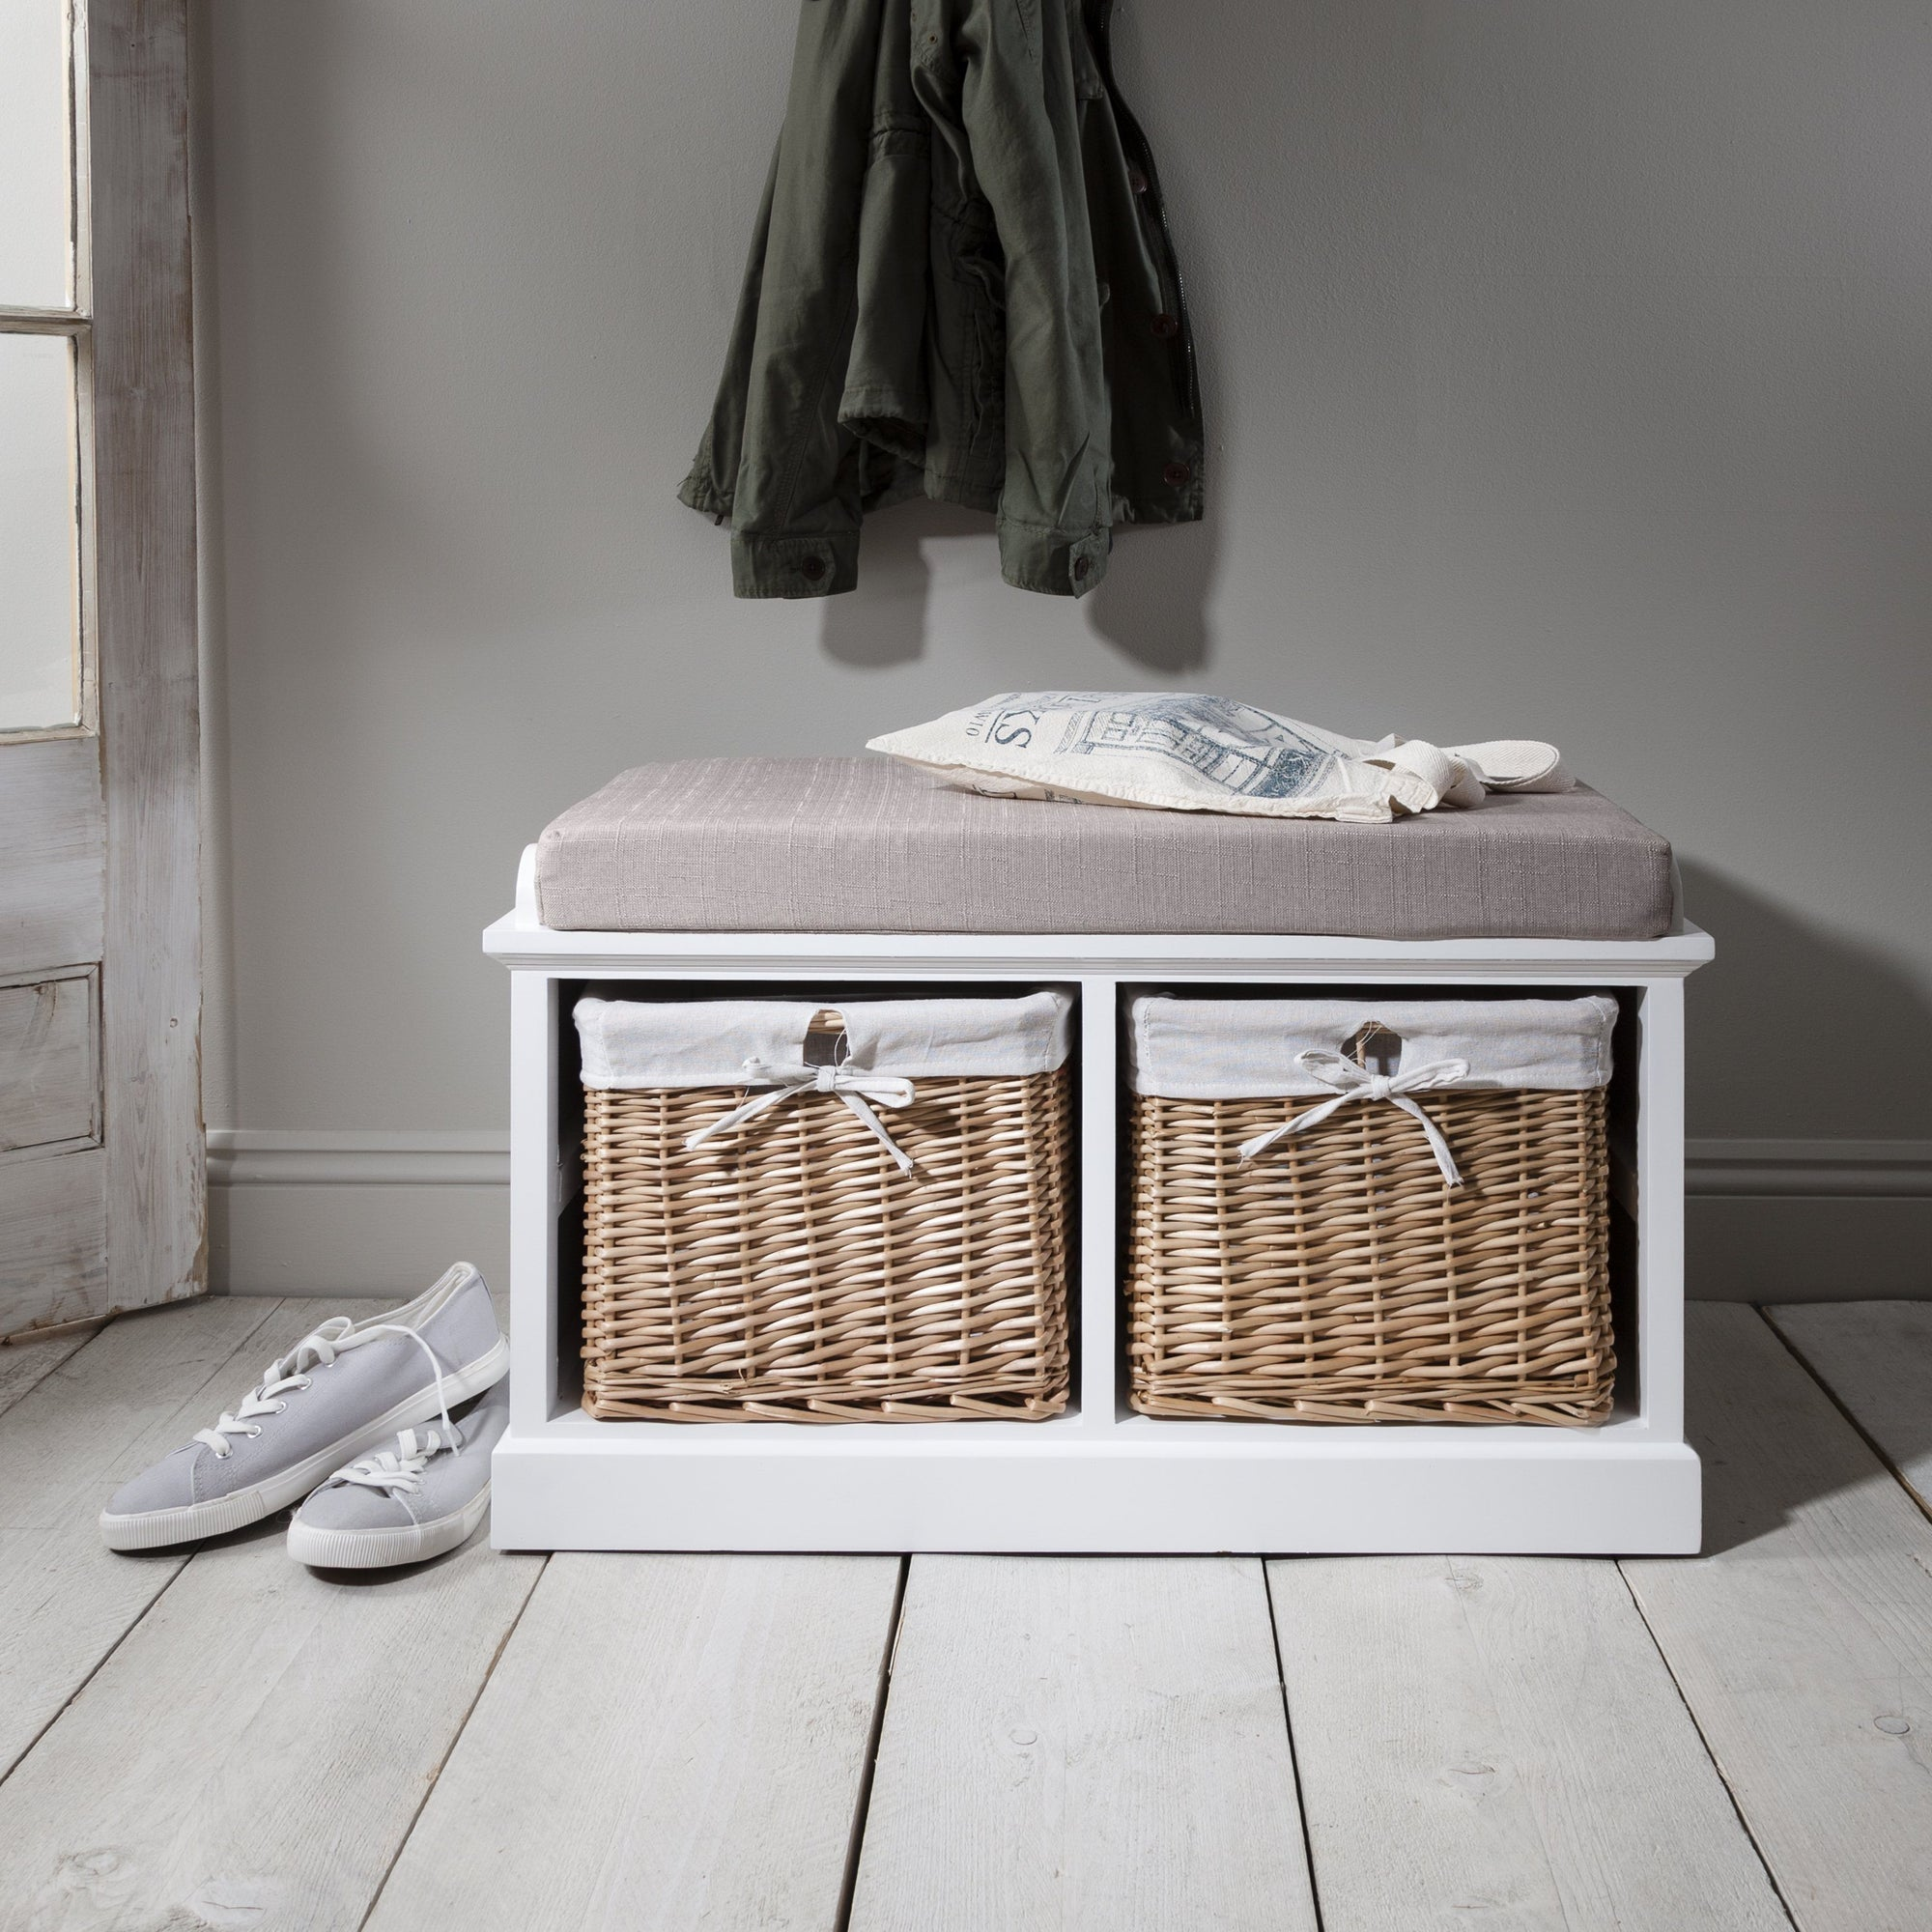 Hallway Shoe Storage Bench in White with cushion - PRE-ORDER - IN STOCK – 18 - 19 September - Laura James